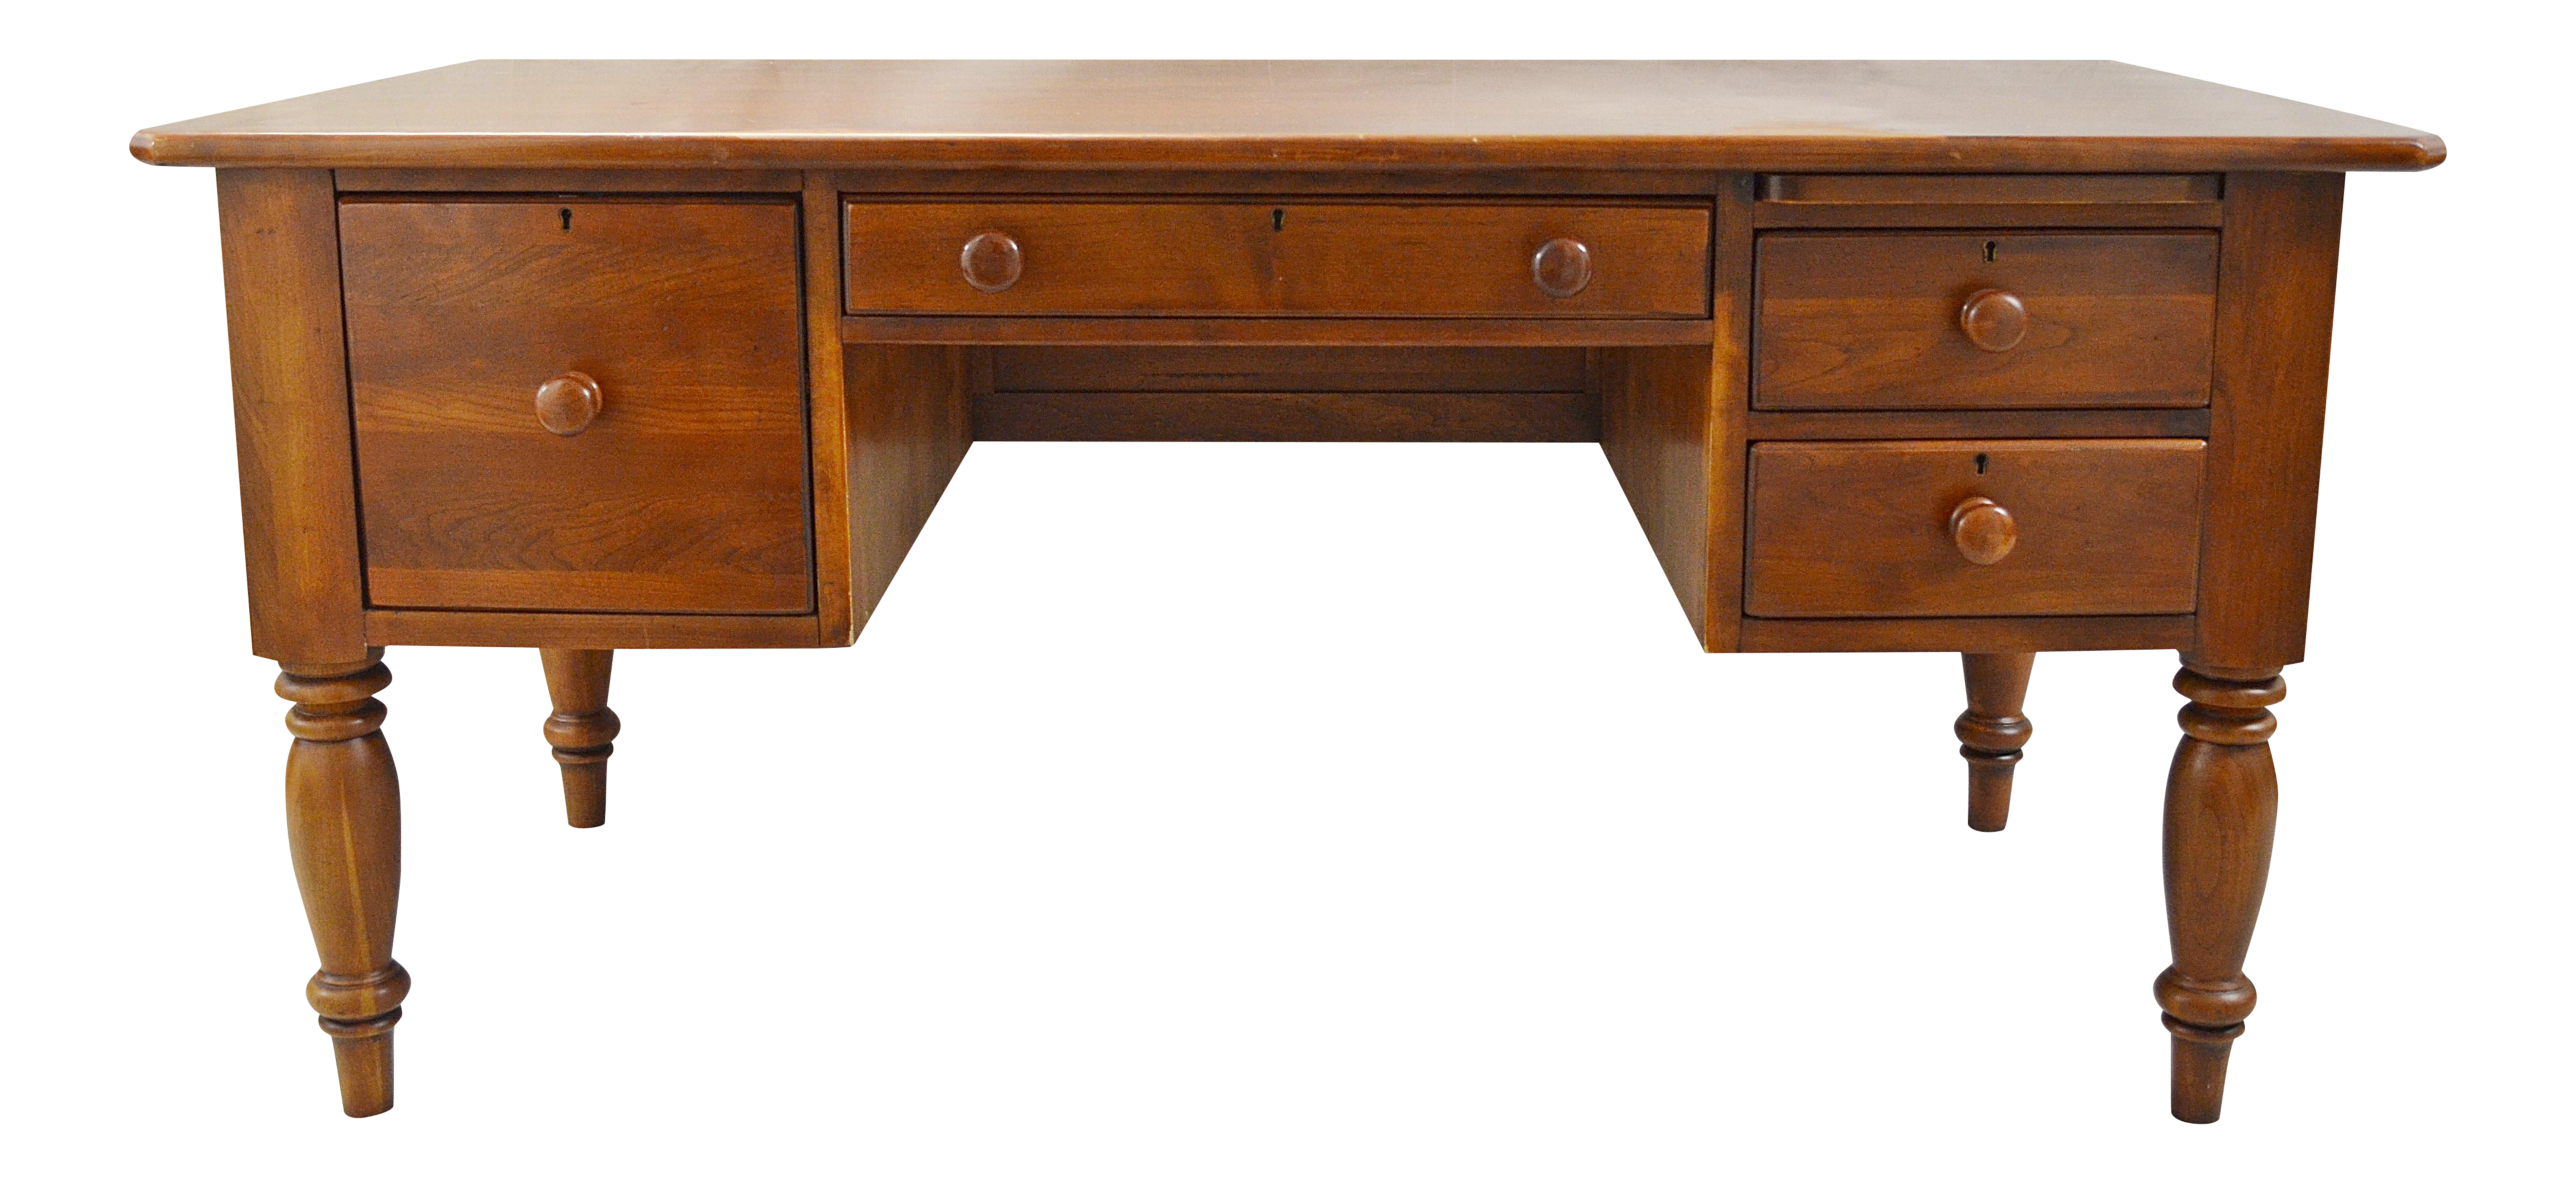 wells perky as dresser made dressers ah bob designs wondrous usa cupboard the trend cherry furniture timberlake collection lexington smart